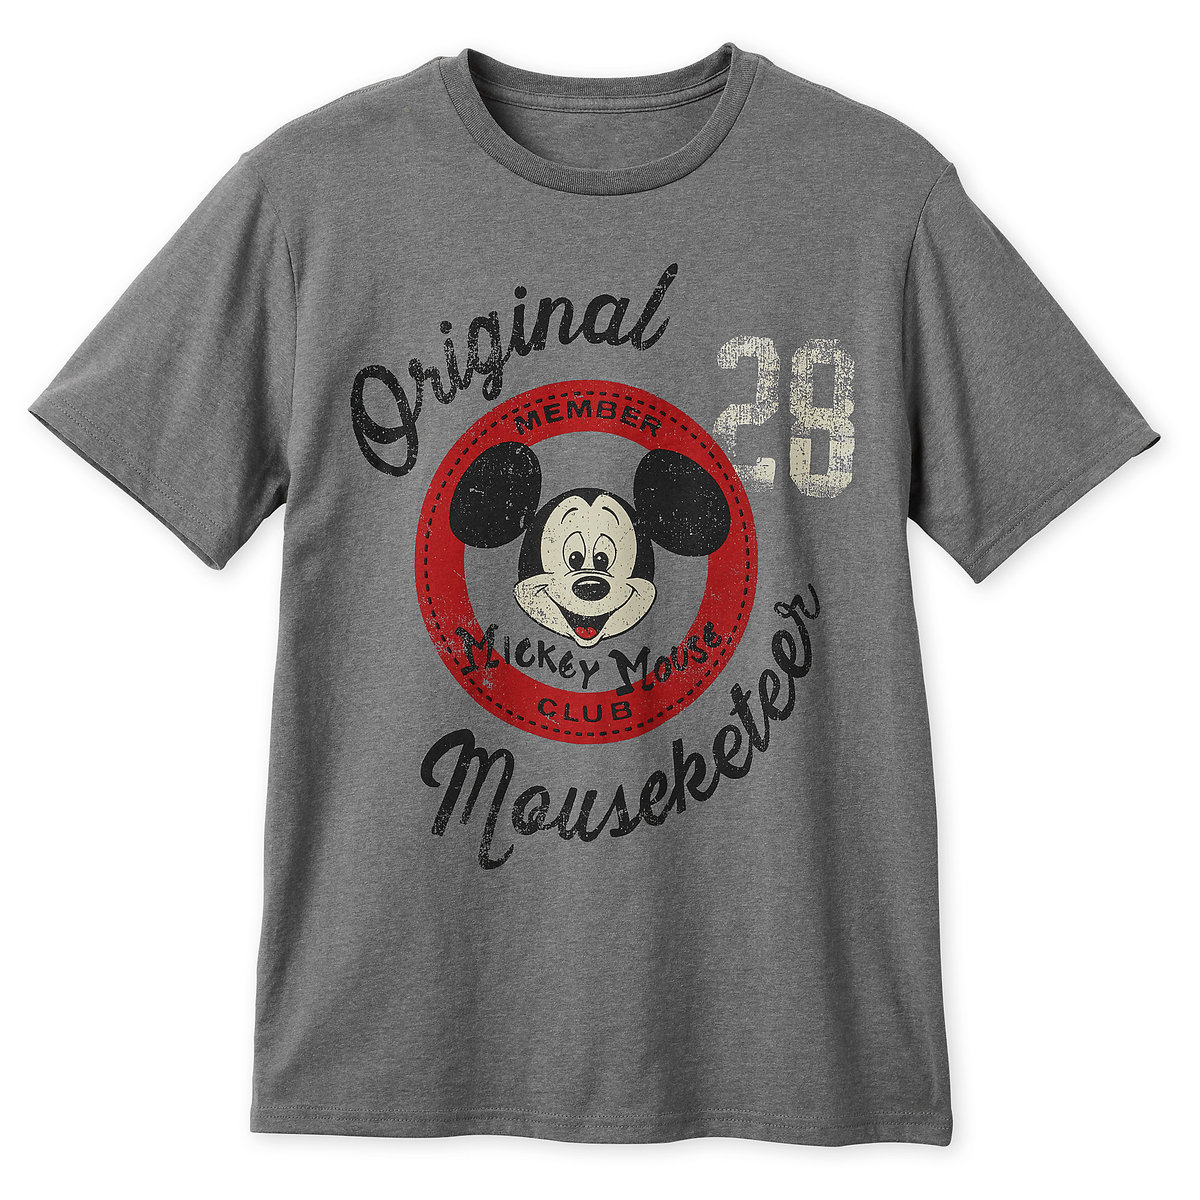 673fbc1d Product Image of The Mickey Mouse Club Mouseketeer T-Shirt for Men # 1